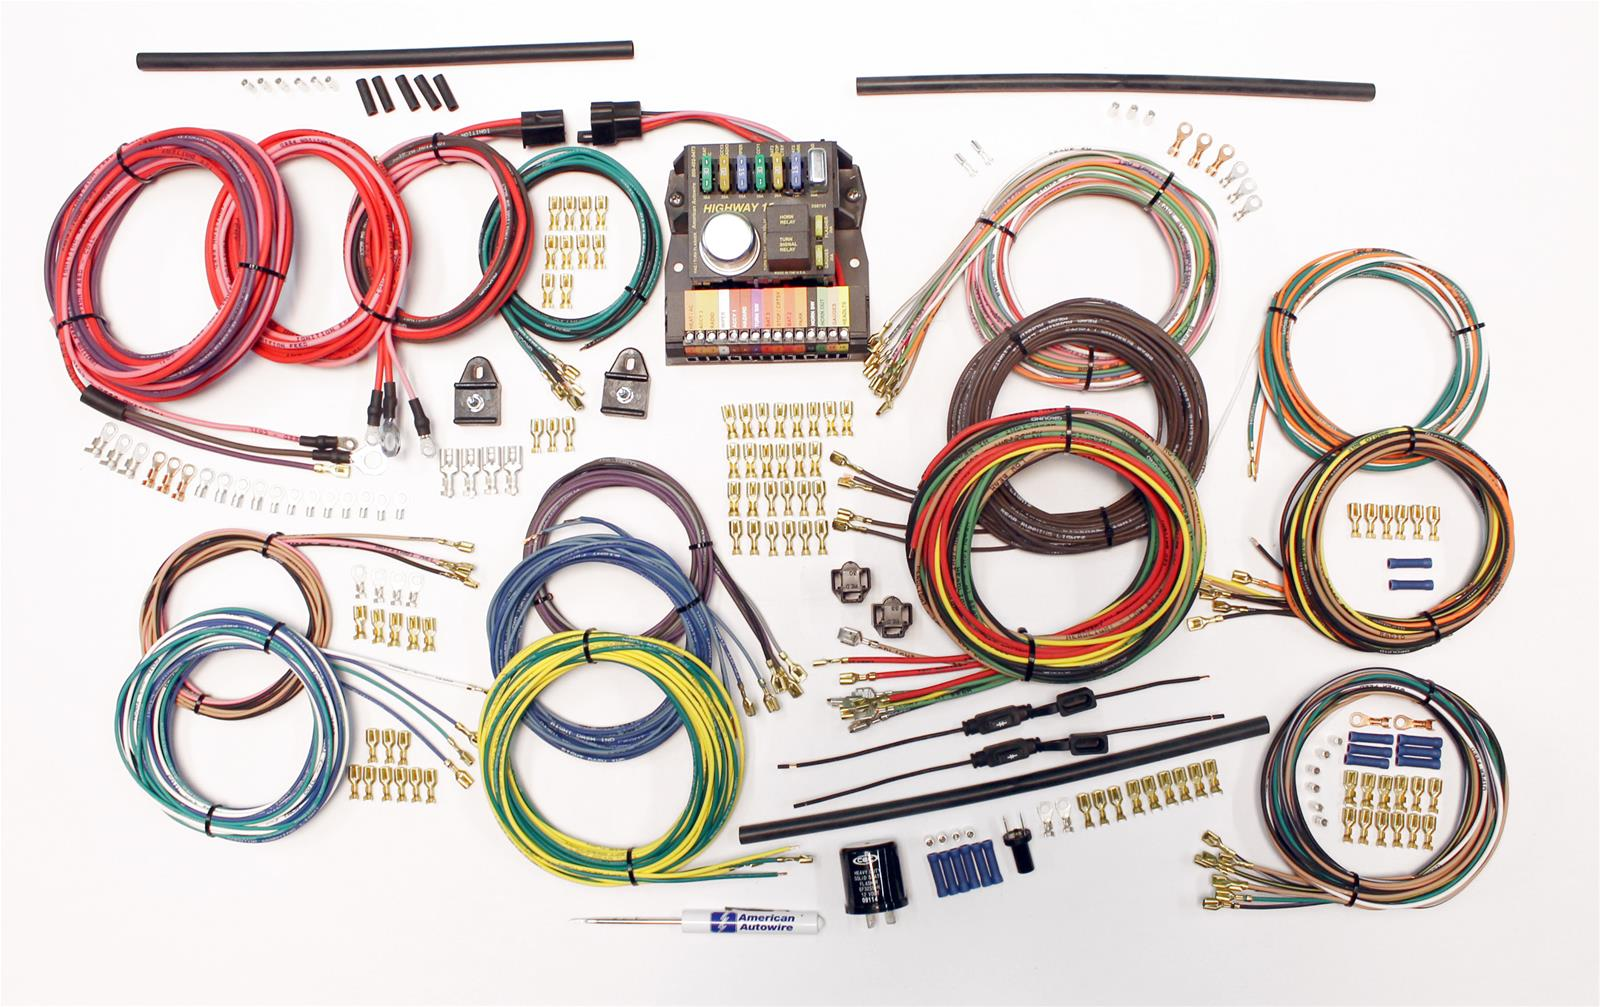 American Autowire Diagrams American Autowire Classic Update Series Wiring Harness